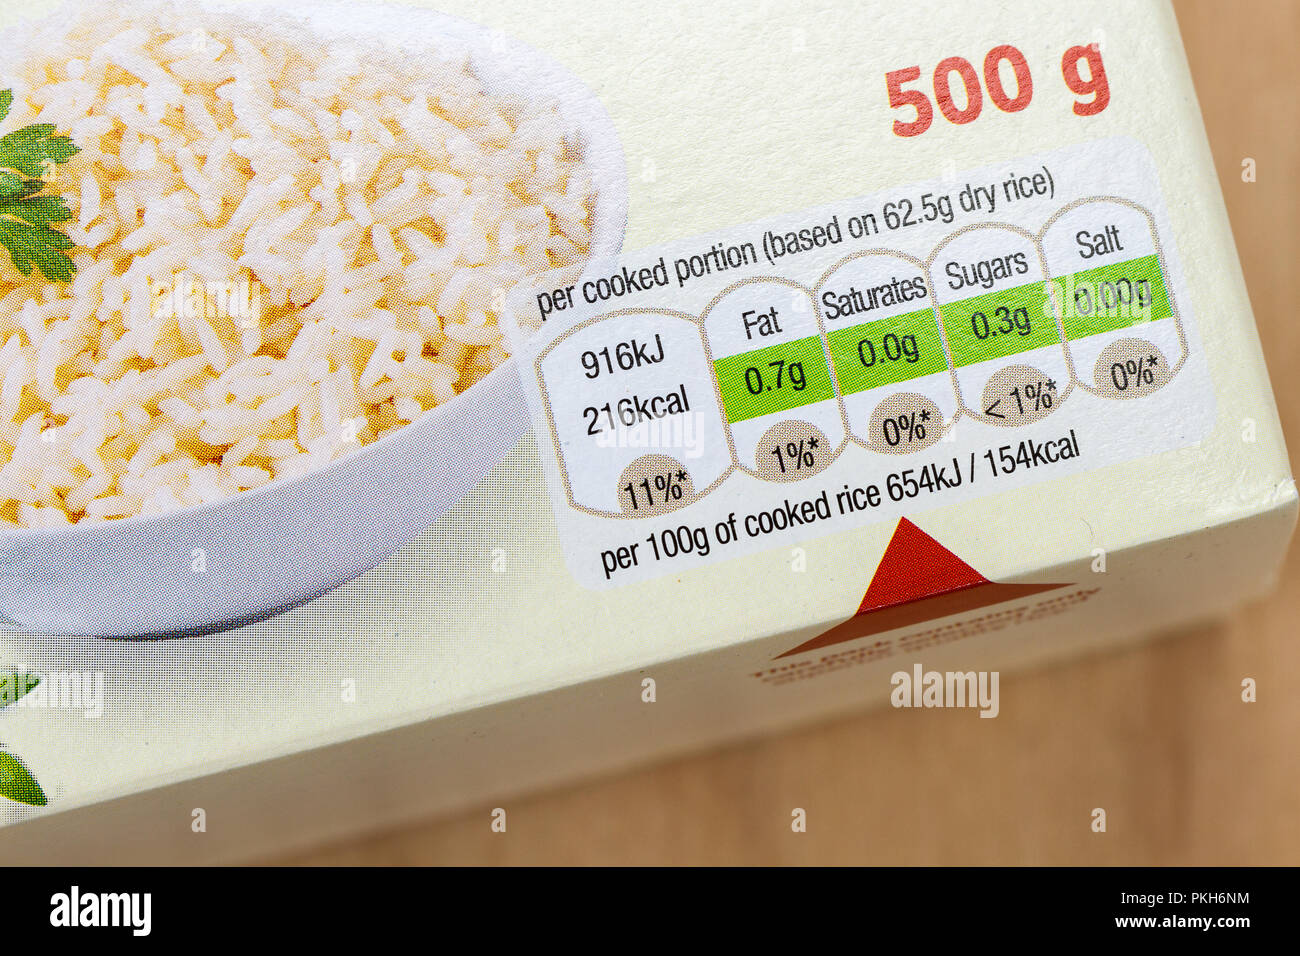 food label nutritional information close up on a box of boil in the